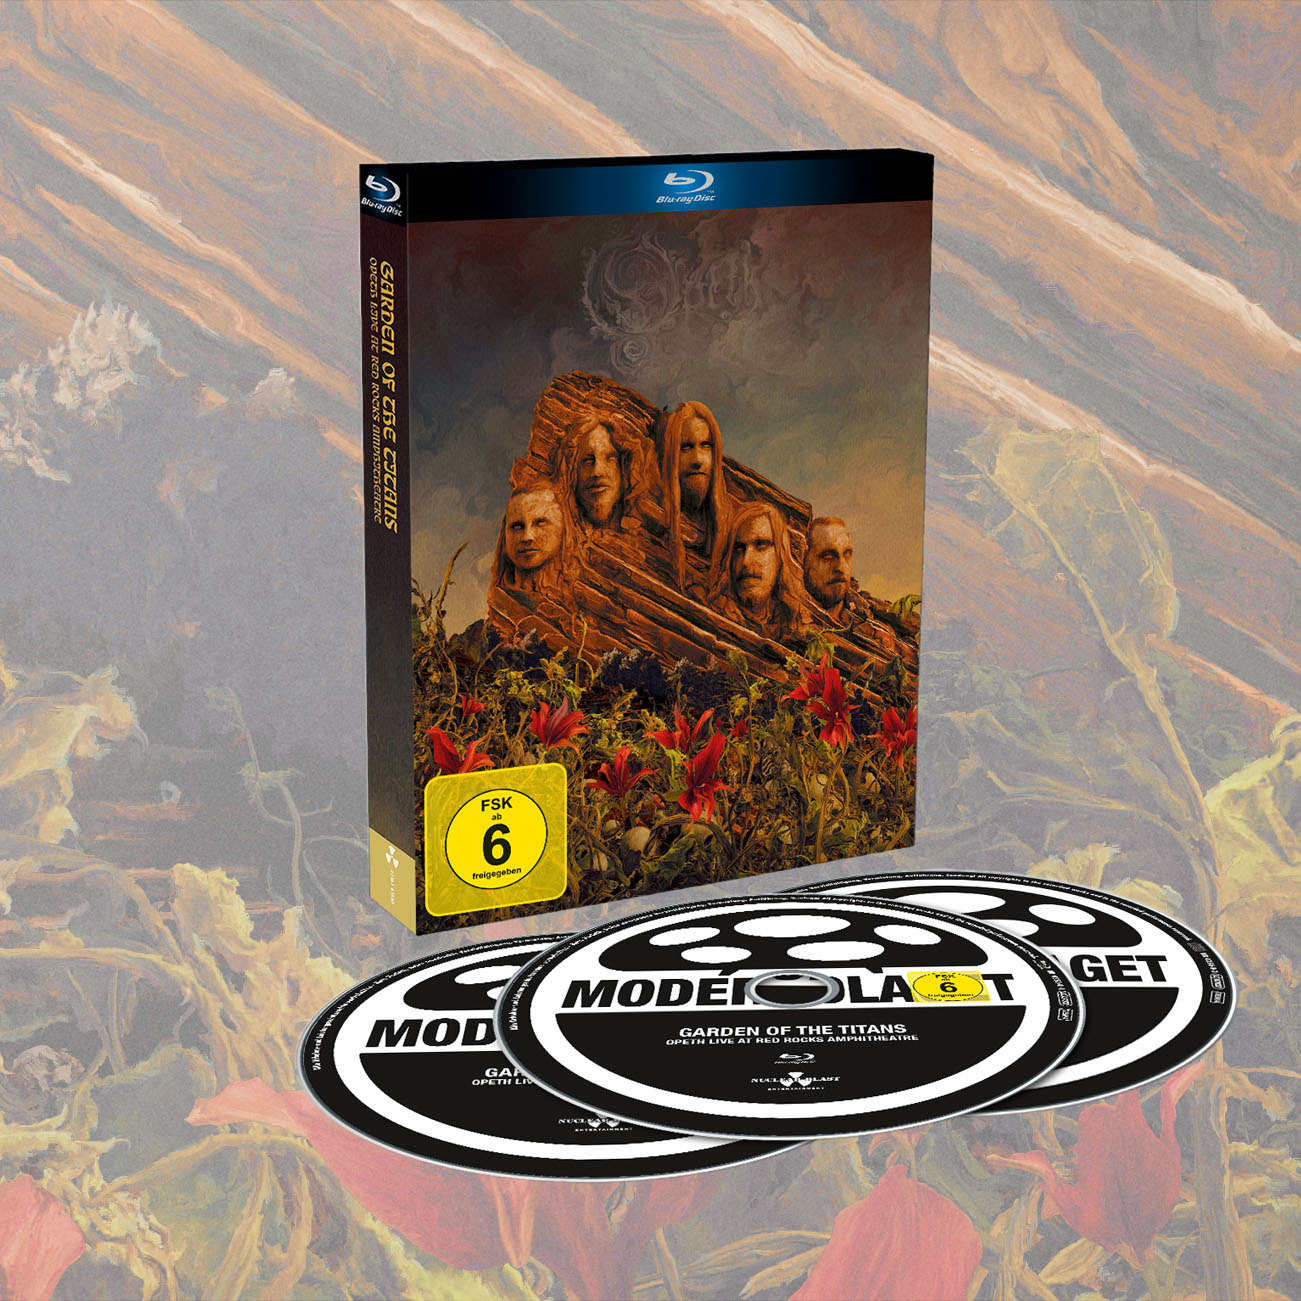 Opeth - 'Garden Of The Titans (Opeth Live at Red Rocks)' Bluray+2CD - Opeth